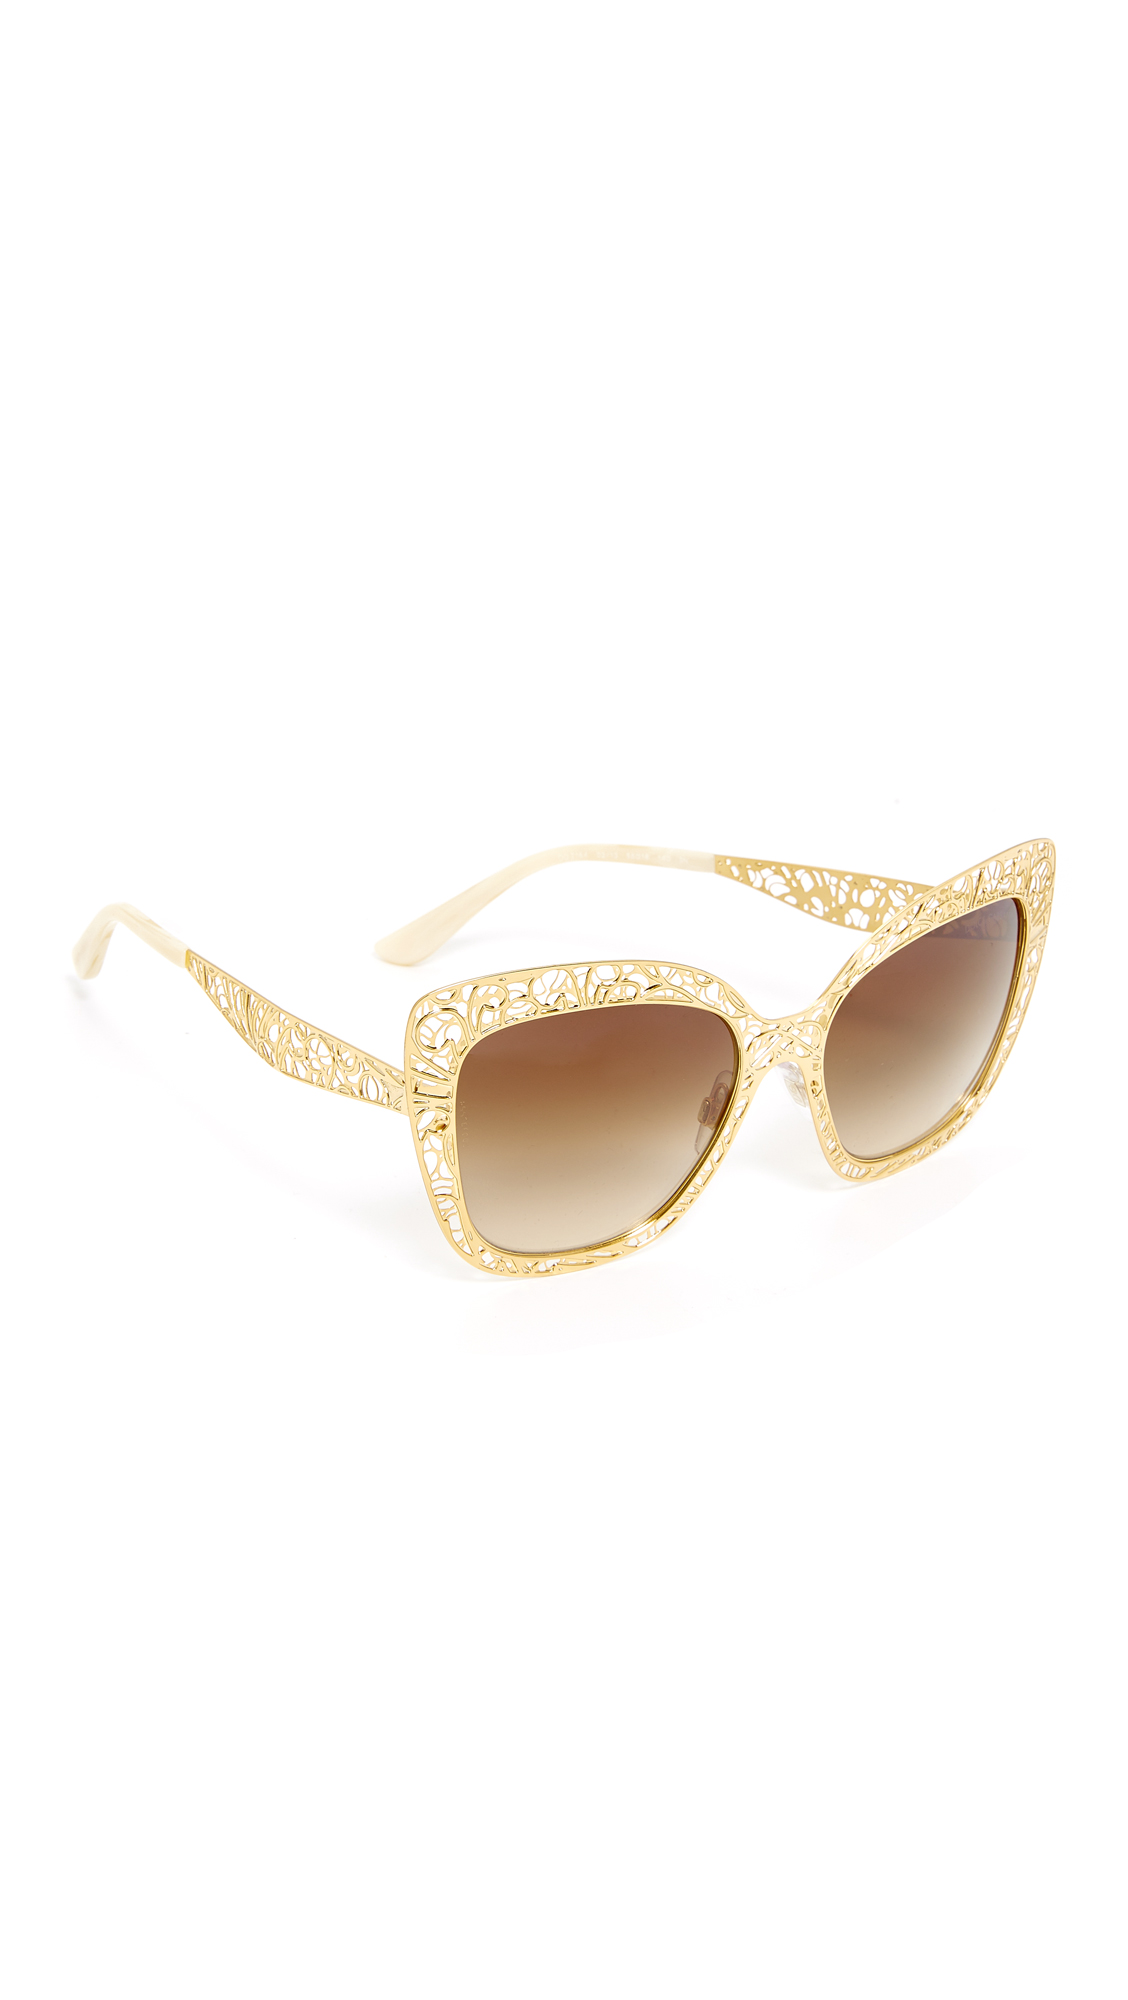 Dolce & Gabbana Lace Sunglasses - Gold/Brown at Shopbop